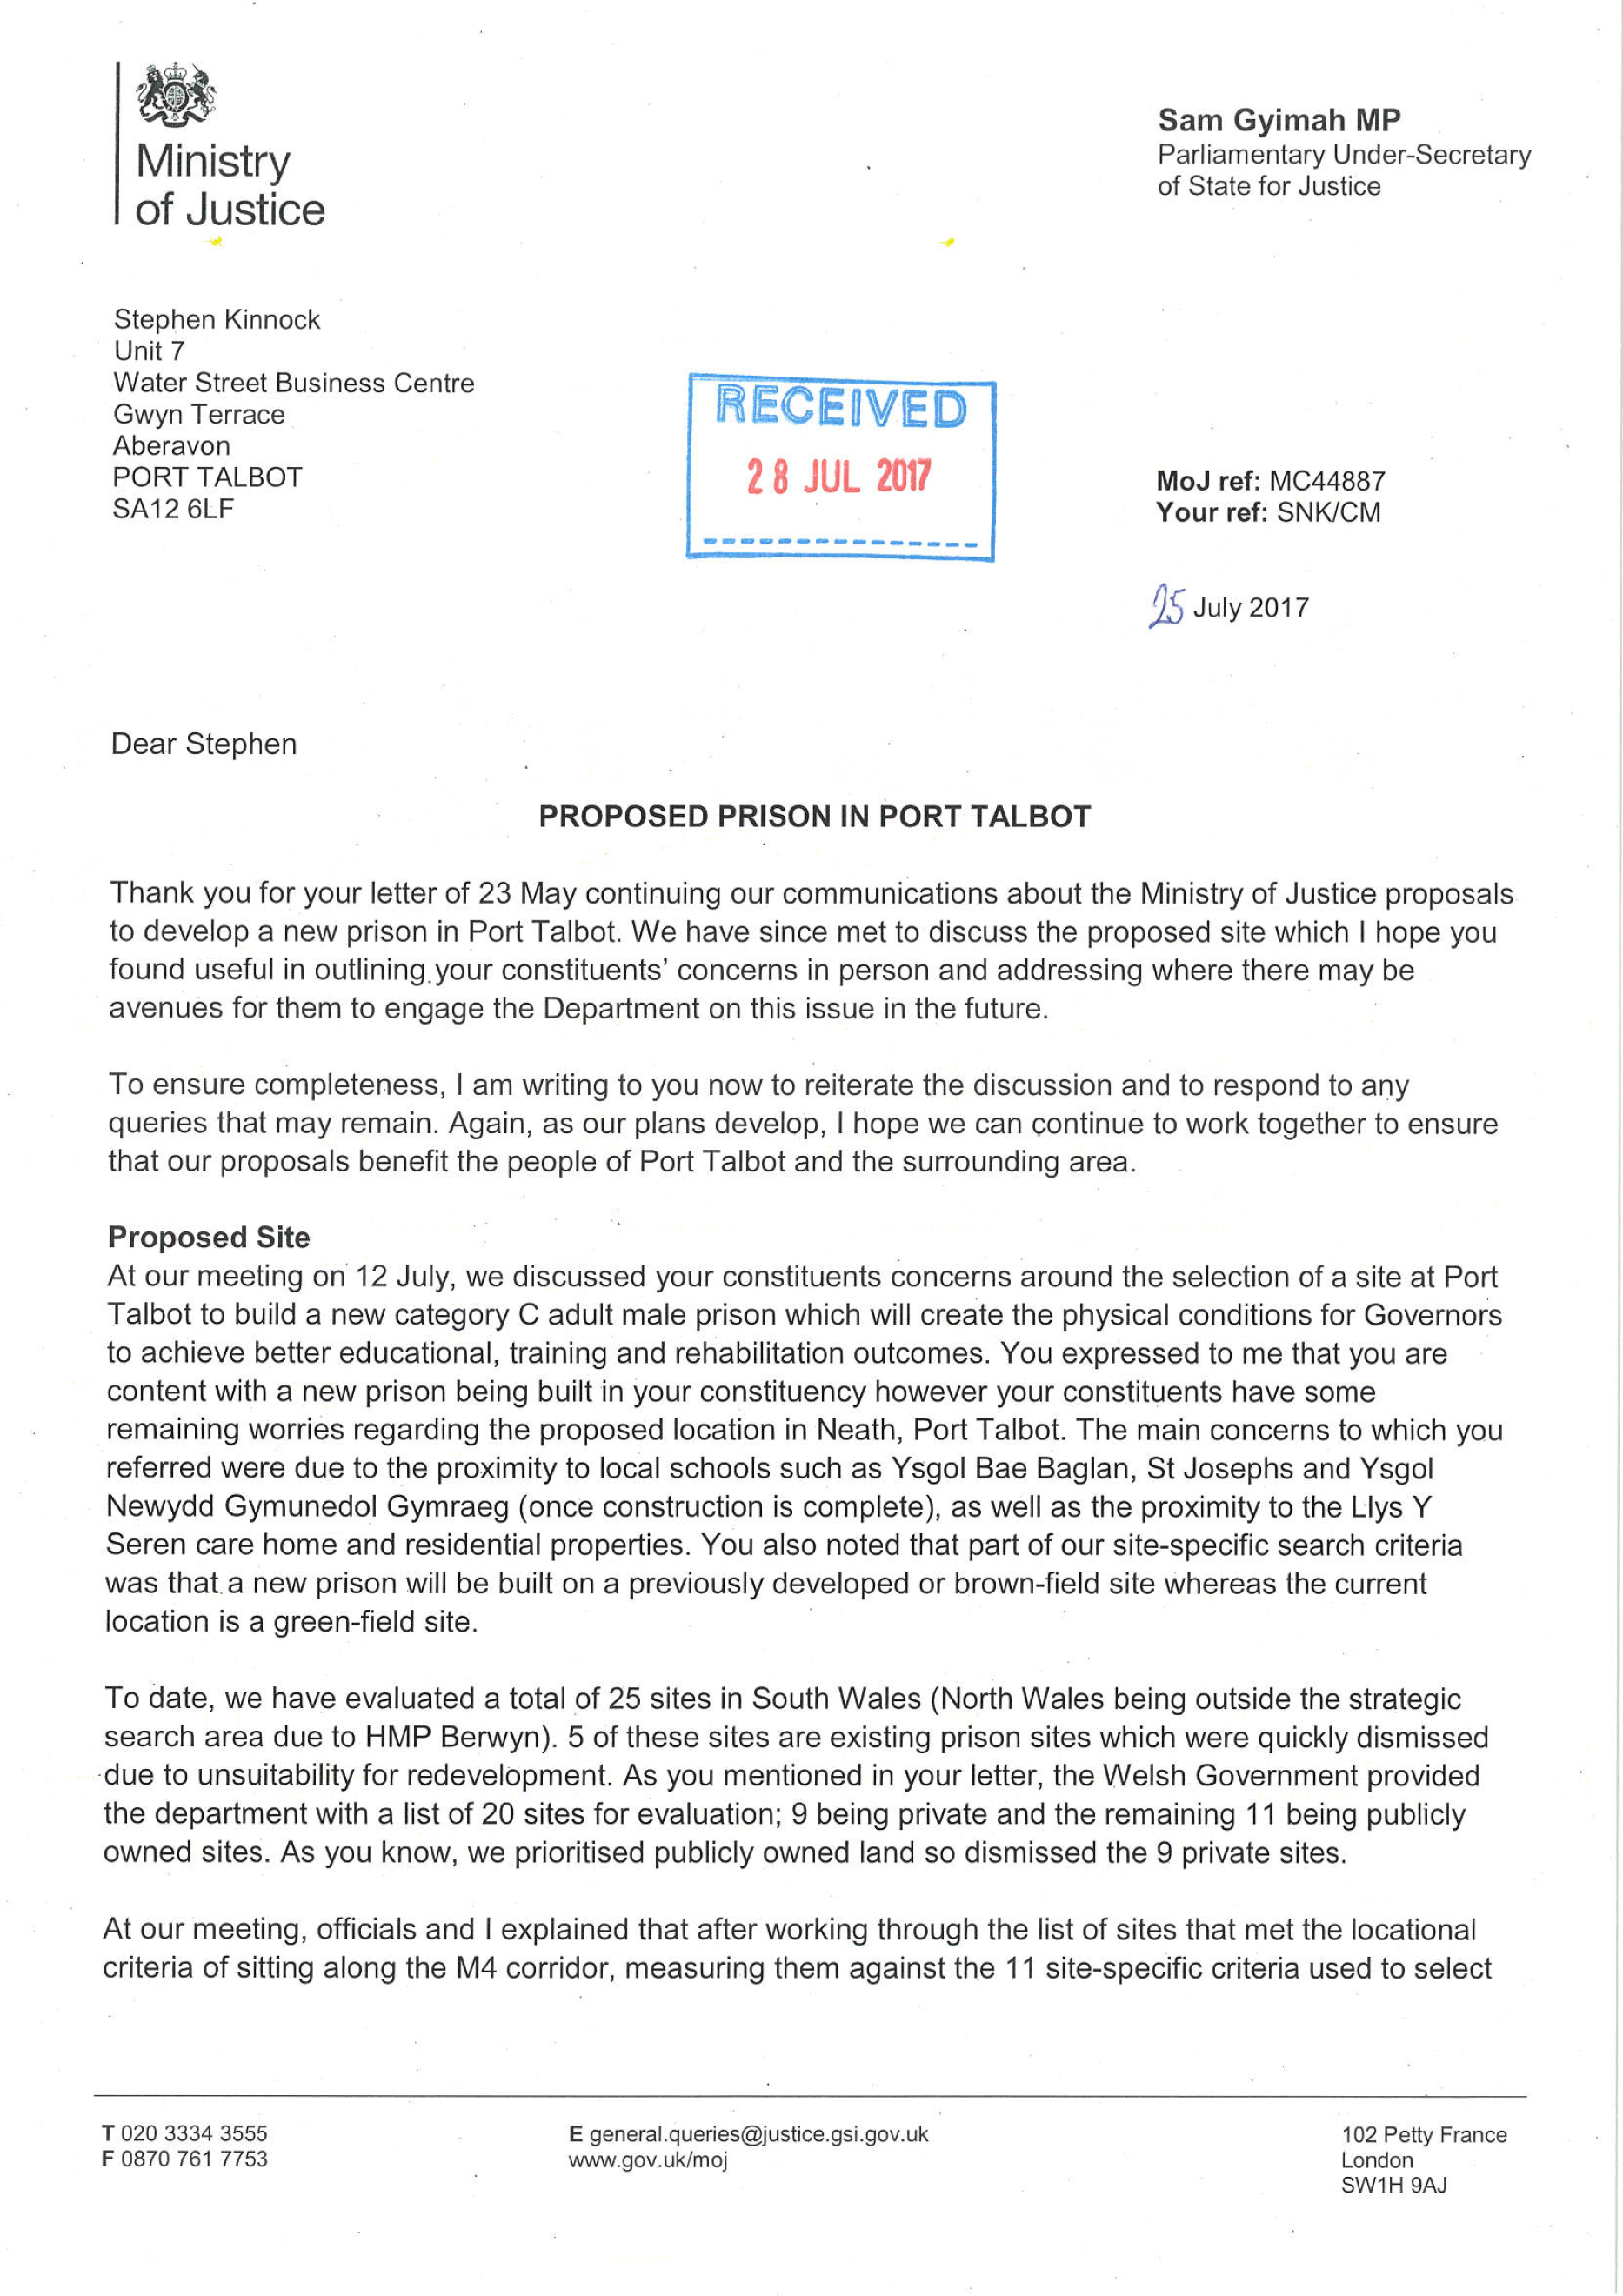 Sam_Gyimah_Letter_28072017_(1).png